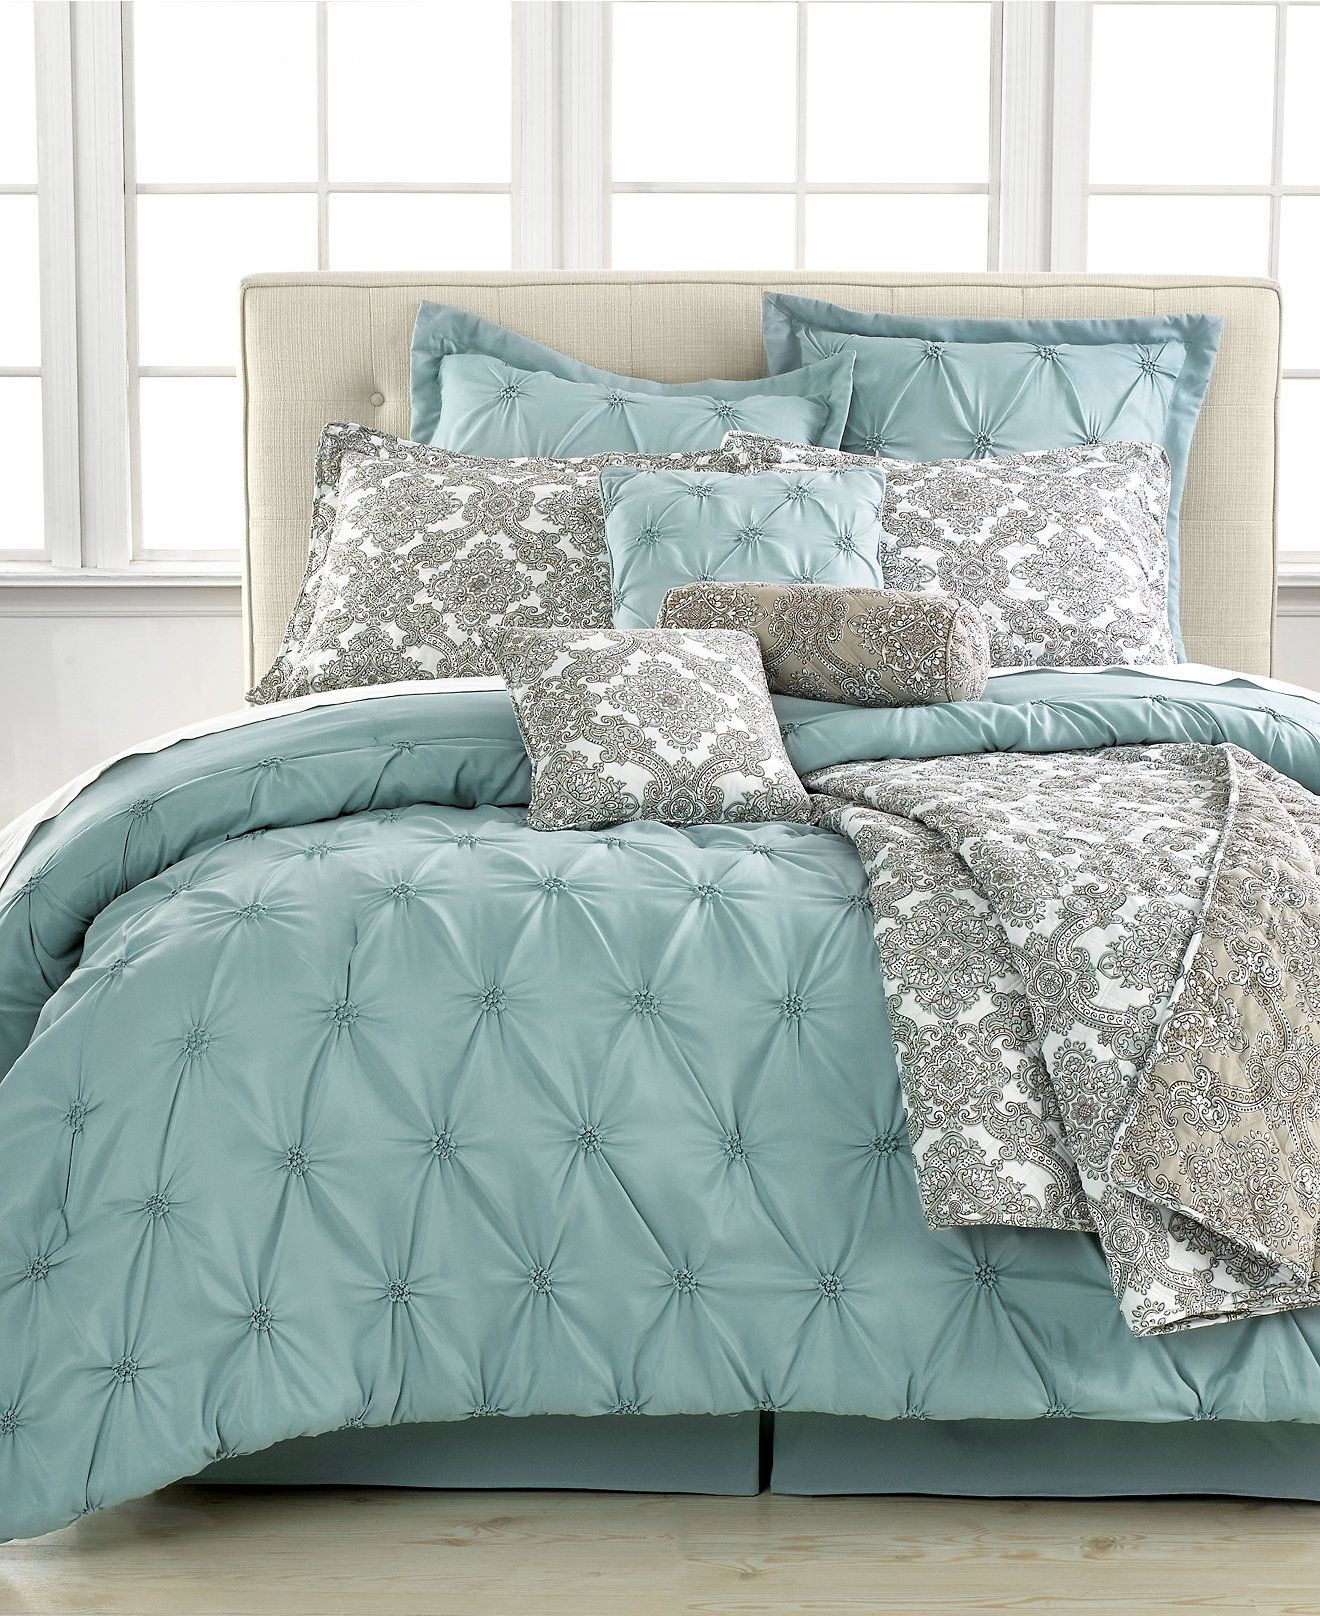 laminate blanket preferential rc ideas bedroom brown cushions ing perfect blue pinterest navy king tiffany on with comforter along examplary bedside frame bed rug bedding sets table moder size horrible also wooden about for and plus